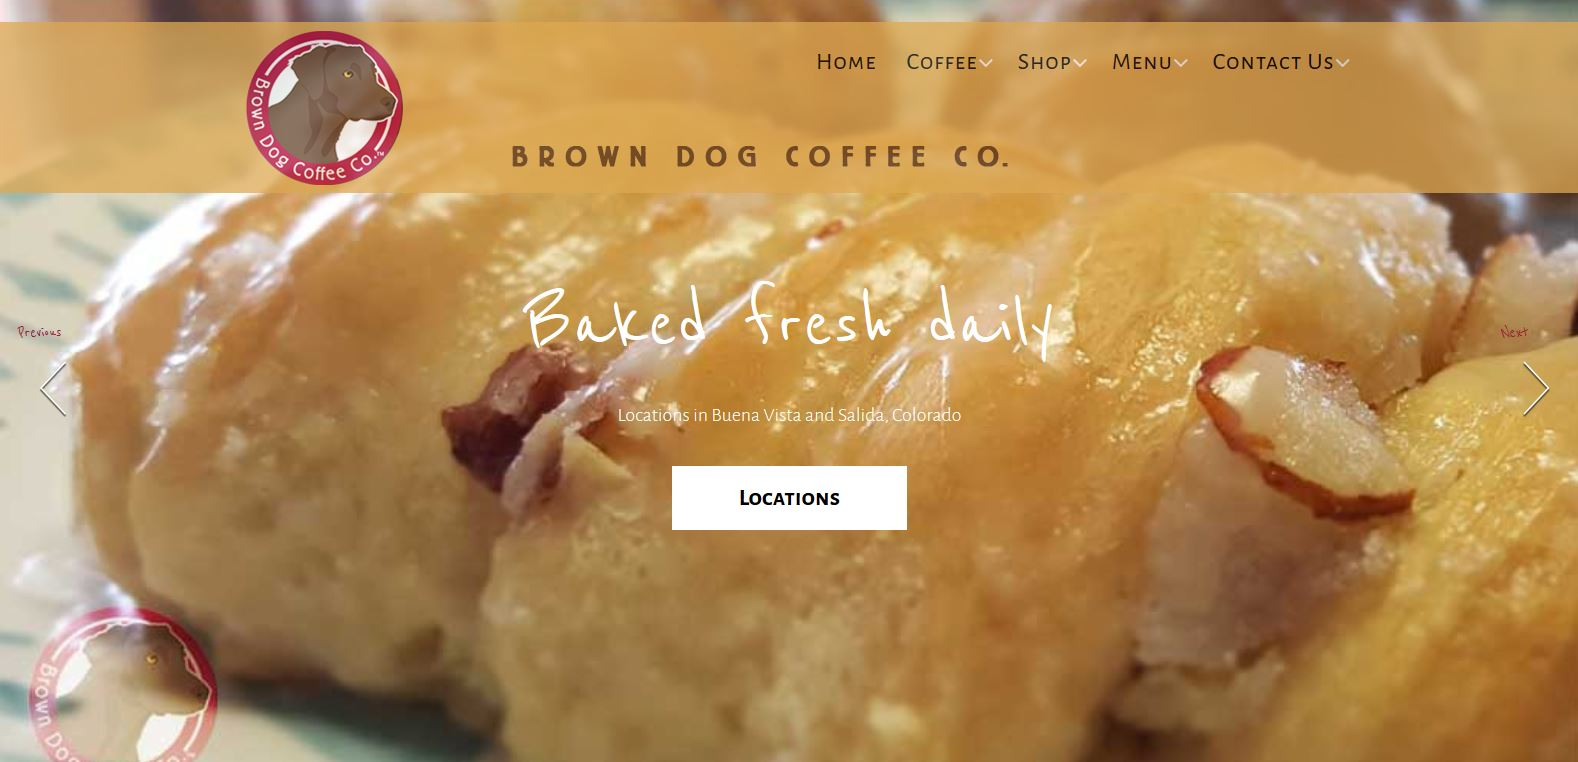 www.browndogcoffee.com